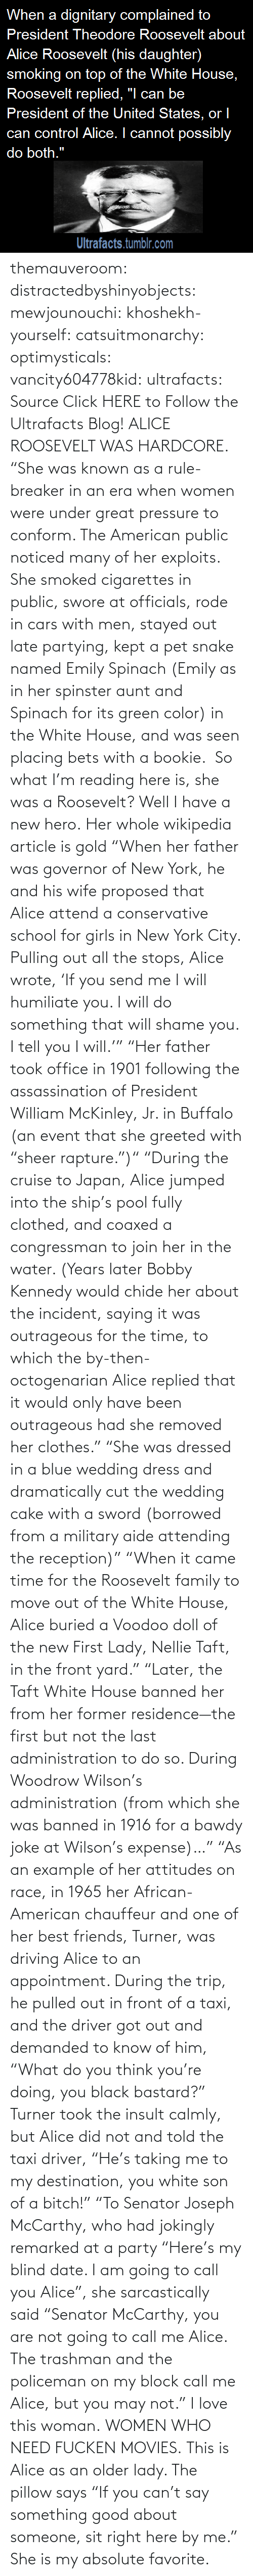 "Pulled Out: themauveroom: distractedbyshinyobjects:  mewjounouchi:  khoshekh-yourself:  catsuitmonarchy:  optimysticals:  vancity604778kid:  ultrafacts:     Source Click HERE to Follow the Ultrafacts Blog!     ALICE ROOSEVELT WAS HARDCORE. ""She was known as a rule-breaker in an era when women were under great pressure to conform. The American public noticed many of her exploits. She smoked cigarettes in public, swore at officials, rode in cars with men, stayed out late partying, kept a pet snake named Emily Spinach (Emily as in her spinster aunt and Spinach for its green color) in the White House, and was seen placing bets with a bookie.    So what I'm reading here is, she was a Roosevelt?  Well I have a new hero.  Her whole wikipedia article is gold ""When her father was governor of New York, he and his wife proposed that Alice attend a conservative school for girls in New York City. Pulling out all the stops, Alice wrote, 'If you send me I will humiliate you. I will do something that will shame you. I tell you I will.'"" ""Her father took office in 1901 following the assassination of President William McKinley, Jr. in Buffalo (an event that she greeted with ""sheer rapture."")"" ""During the cruise to Japan, Alice jumped into the ship's pool fully clothed, and coaxed a congressman to join her in the water. (Years later Bobby Kennedy would chide her about the incident, saying it was outrageous for the time, to which the by-then-octogenarian Alice replied that it would only have been outrageous had she removed her clothes."" ""She was dressed in a blue wedding dress and dramatically cut the wedding cake with a sword (borrowed from a military aide attending the reception)"" ""When it came time for the Roosevelt family to move out of the White House, Alice buried a Voodoo doll of the new First Lady, Nellie Taft, in the front yard."" ""Later, the Taft White House banned her from her former residence—the first but not the last administration to do so. During Woodrow Wilson's administration (from which she was banned in 1916 for a bawdy joke at Wilson's expense)…"" ""As an example of her attitudes on race, in 1965 her African-American chauffeur and one of her best friends, Turner, was driving Alice to an appointment. During the trip, he pulled out in front of a taxi, and the driver got out and demanded to know of him, ""What do you think you're doing, you black bastard?"" Turner took the insult calmly, but Alice did not and told the taxi driver, ""He's taking me to my destination, you white son of a bitch!"" ""To Senator Joseph McCarthy, who had jokingly remarked at a party ""Here's my blind date. I am going to call you Alice"", she sarcastically said ""Senator McCarthy, you are not going to call me Alice. The trashman and the policeman on my block call me Alice, but you may not.""  I love this woman.  WOMEN WHO NEED FUCKEN MOVIES.   This is Alice as an older lady. The pillow says ""If you can't say something good about someone, sit right here by me.""  She is my absolute favorite."